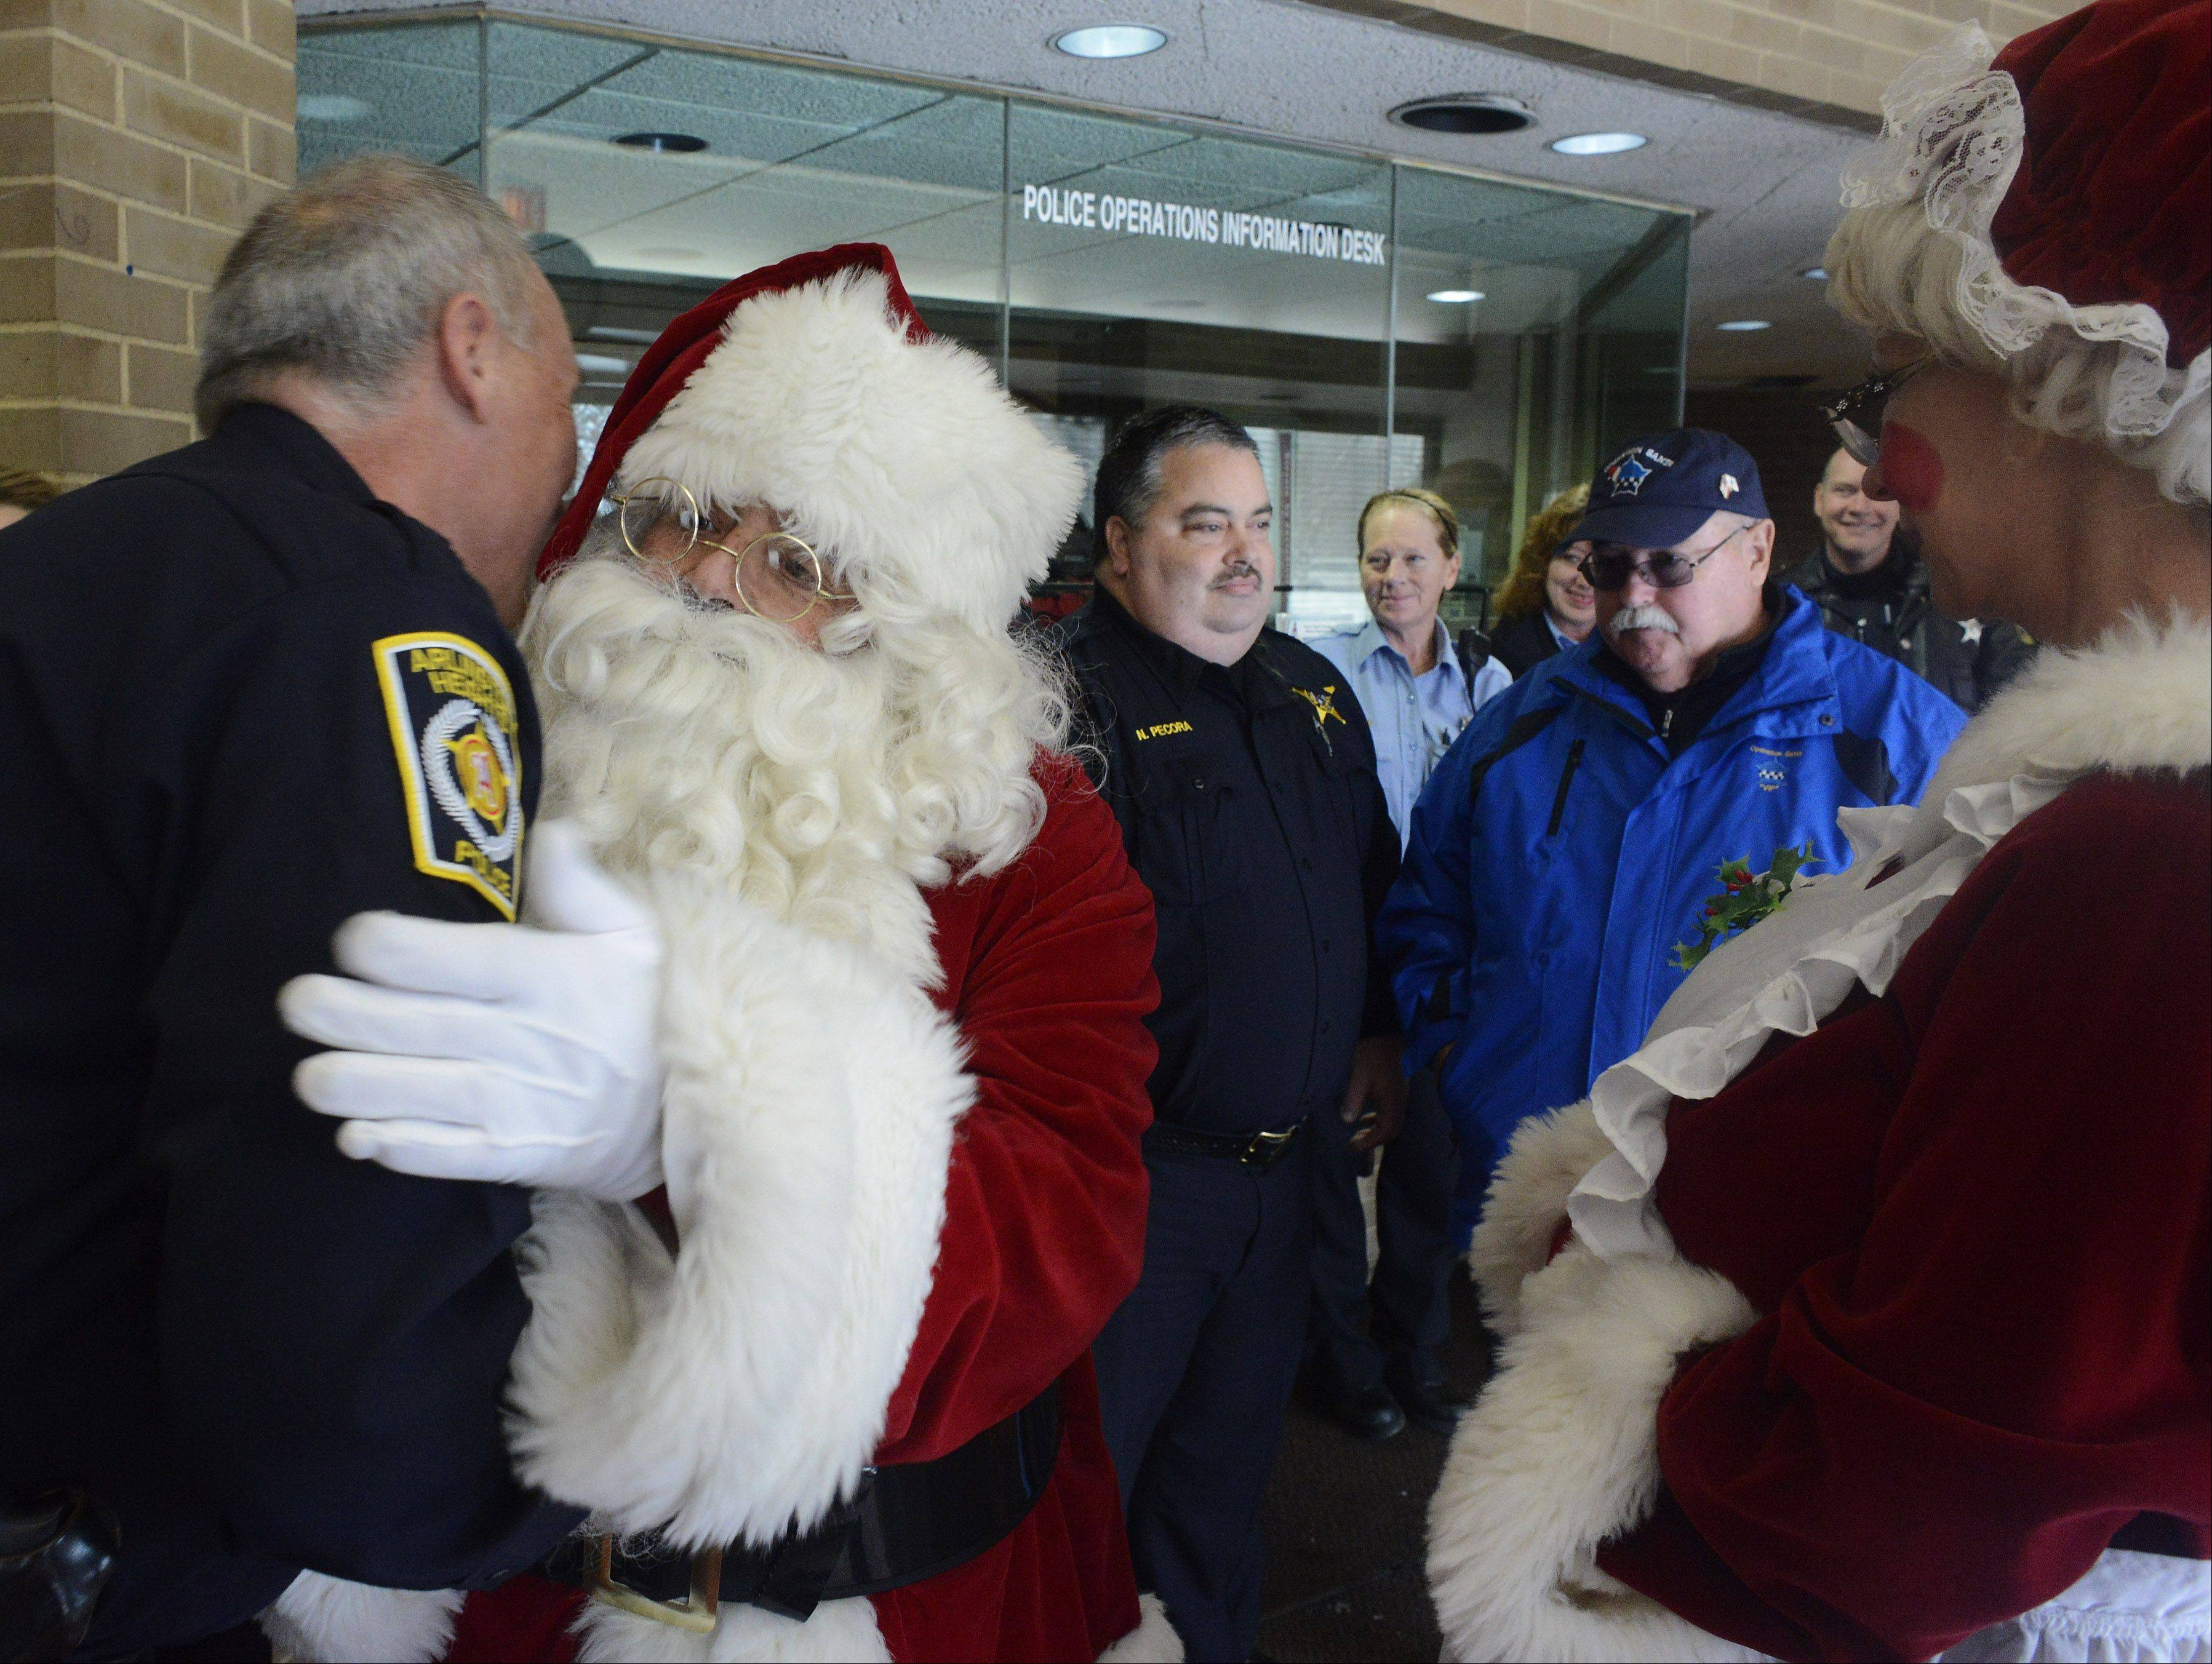 Arlington Heights Cmdr. Andrew Whowell gets a hug from Santa on Saturday as the Chicago Police Memorial Foundation's Operation Santa stops at the Arlington Heights Police Department to drop off gifts for Officer Michael McEvoy, who was shot Thursday in the line of duty.